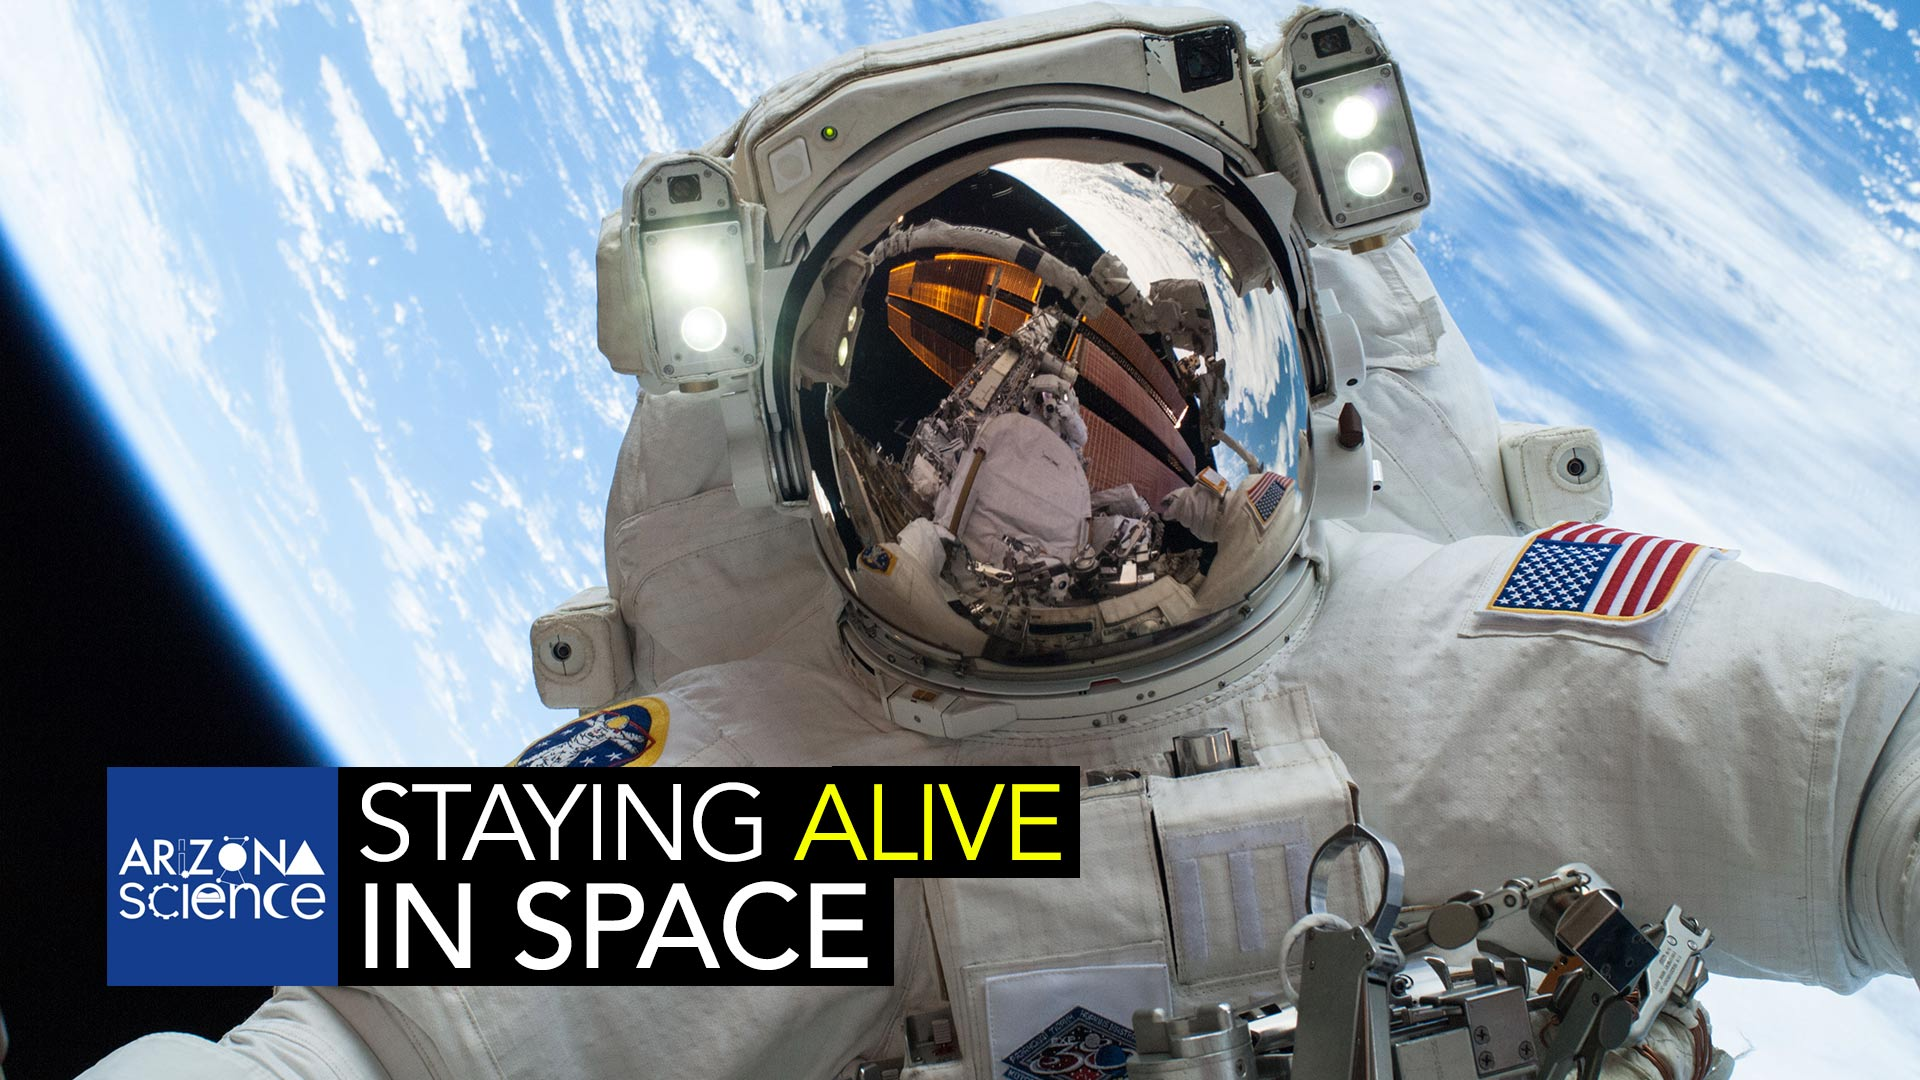 AZSCI - Staying Alive in Space